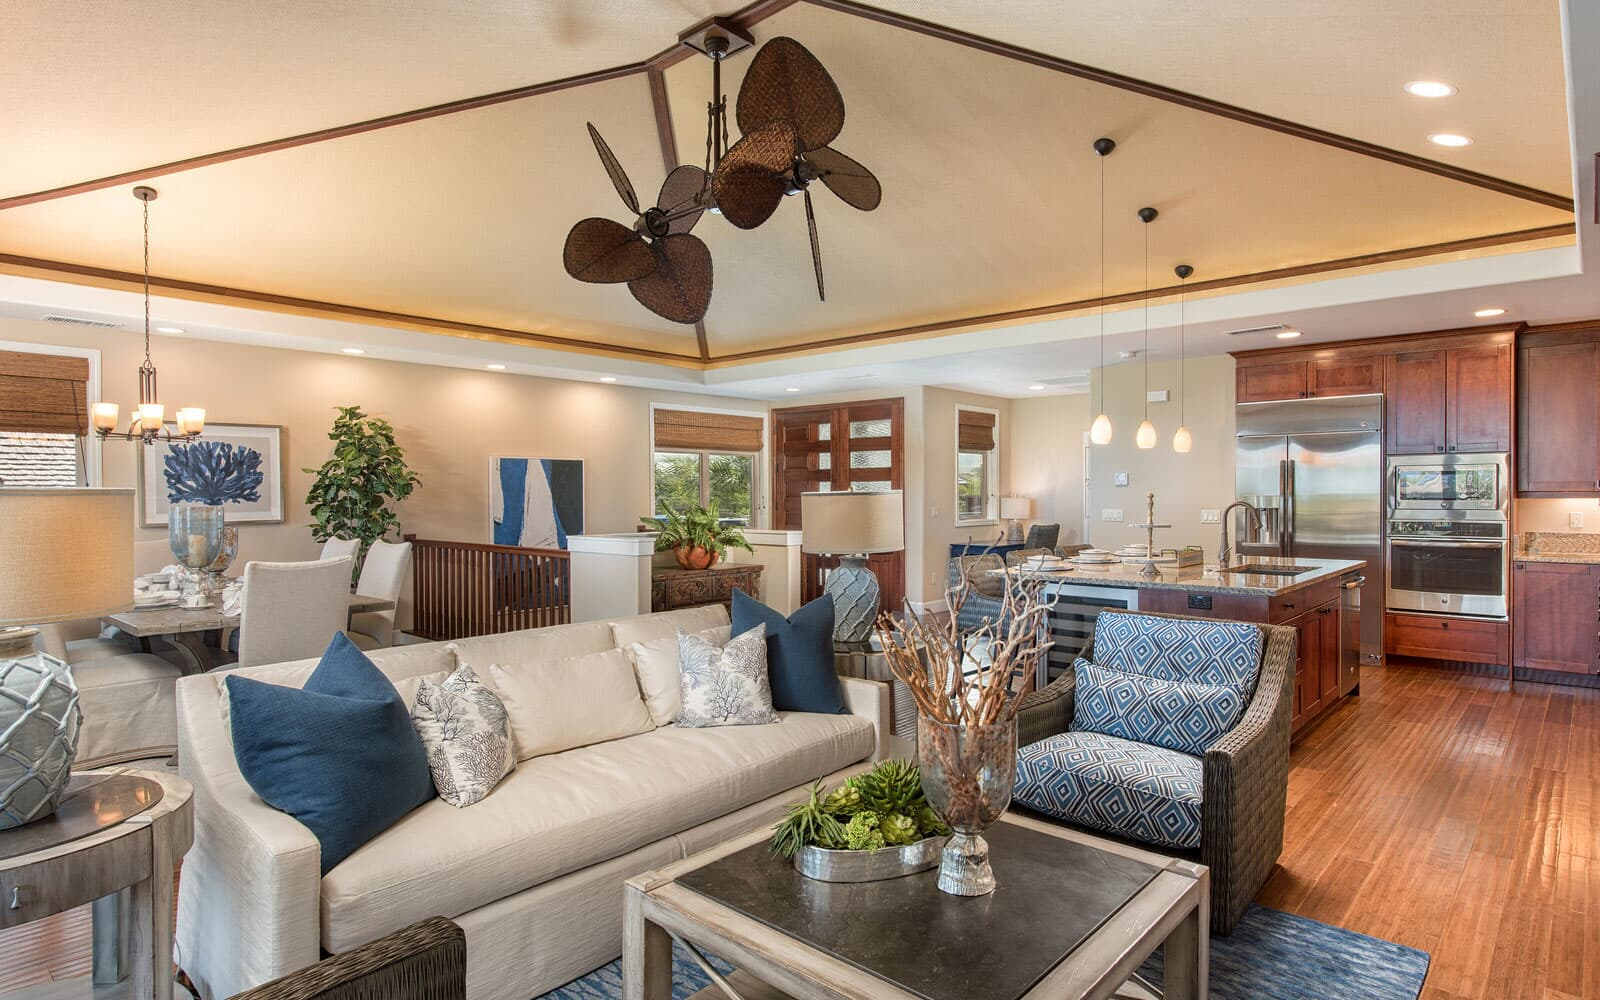 1great-room-new-home-mahina-plan-4-kamilo-at-mauna-lani-big-island-brookfield-residential